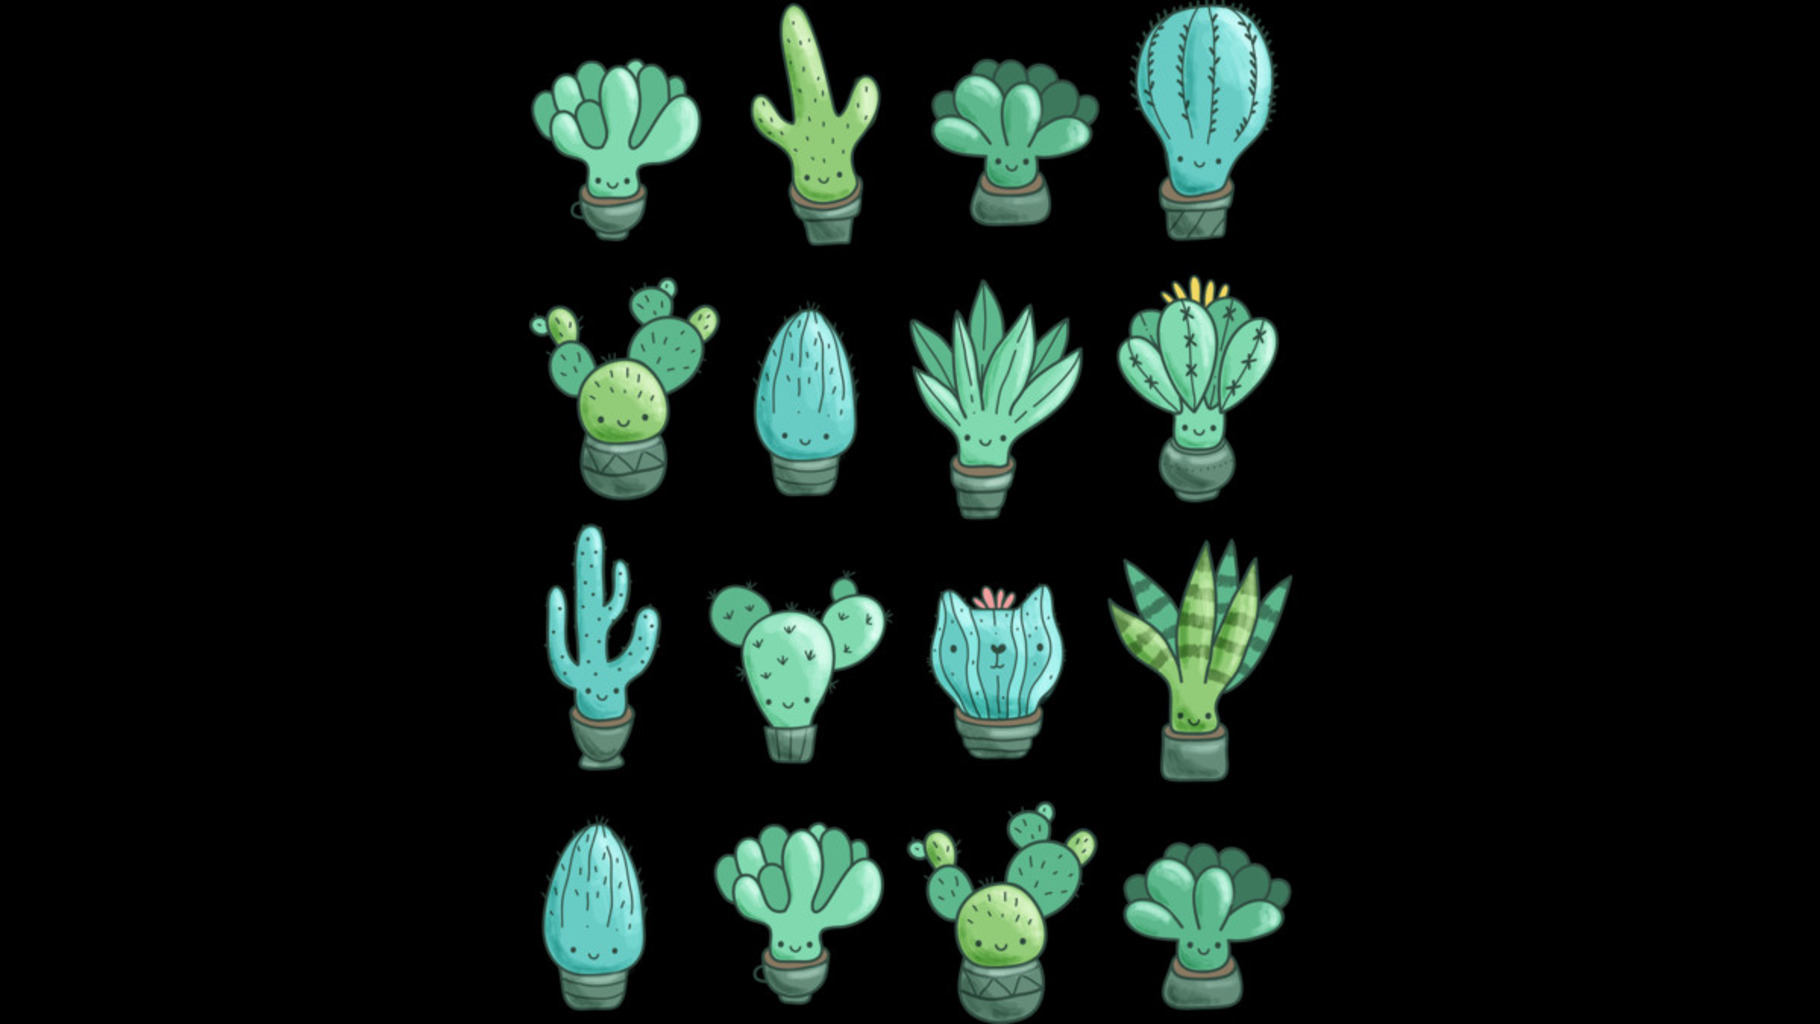 Design by Humans: Cacti & succulents